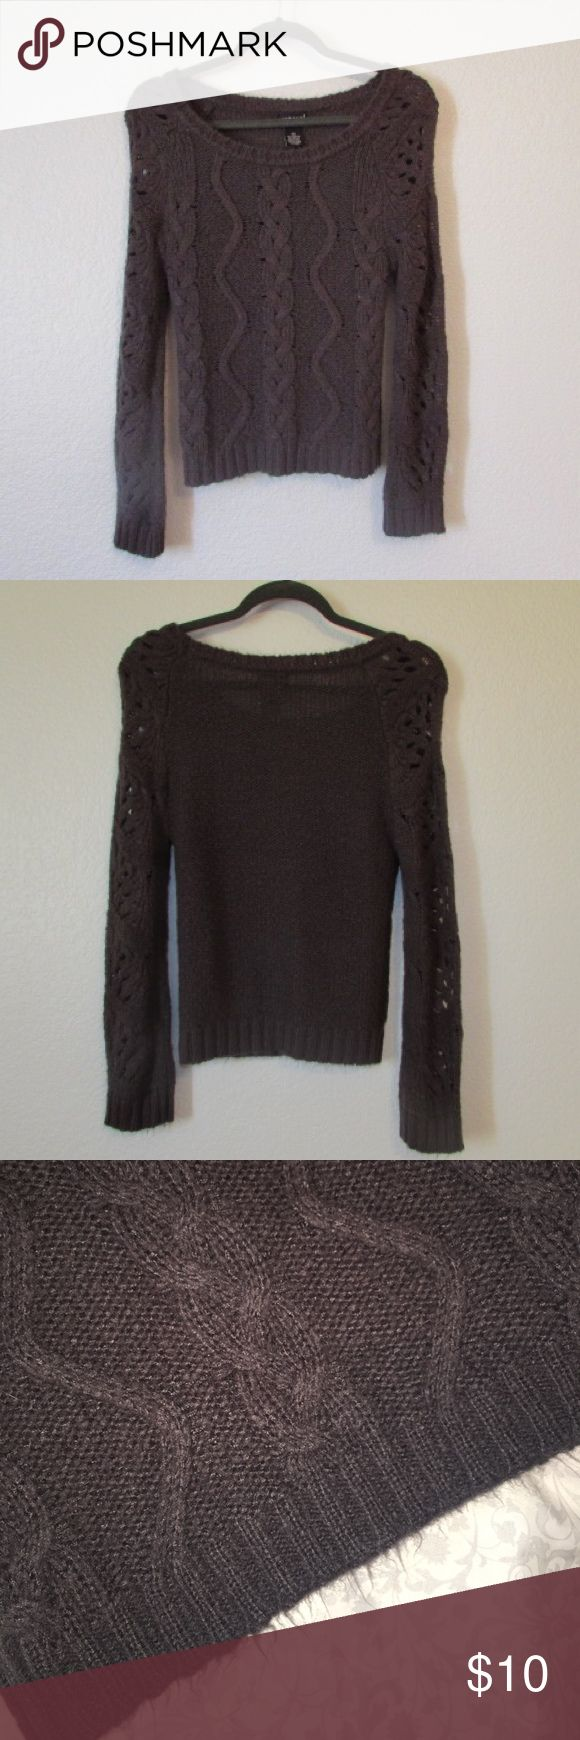 Wet Seal sweater Wet seal grey sweater. Very soft and cozy. Gently worn, but bottom has started to fray (as pictured). Wet Seal Sweaters Crew & Scoop Necks